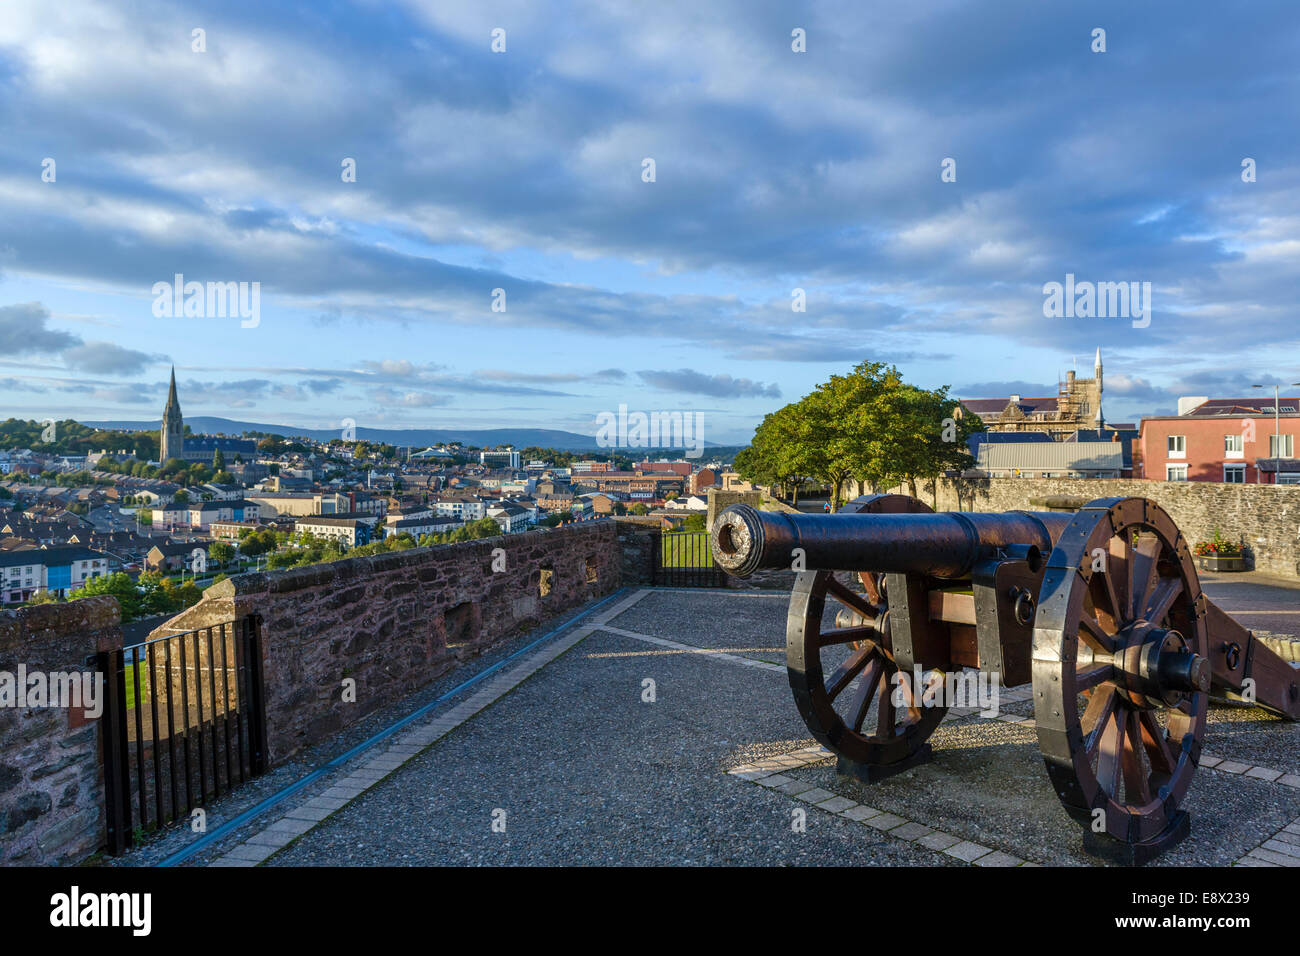 Cannon on the Royal Bastion of Old City Walls with Bogside behind, Derry, County Londonderry, Northern Ireland, - Stock Image